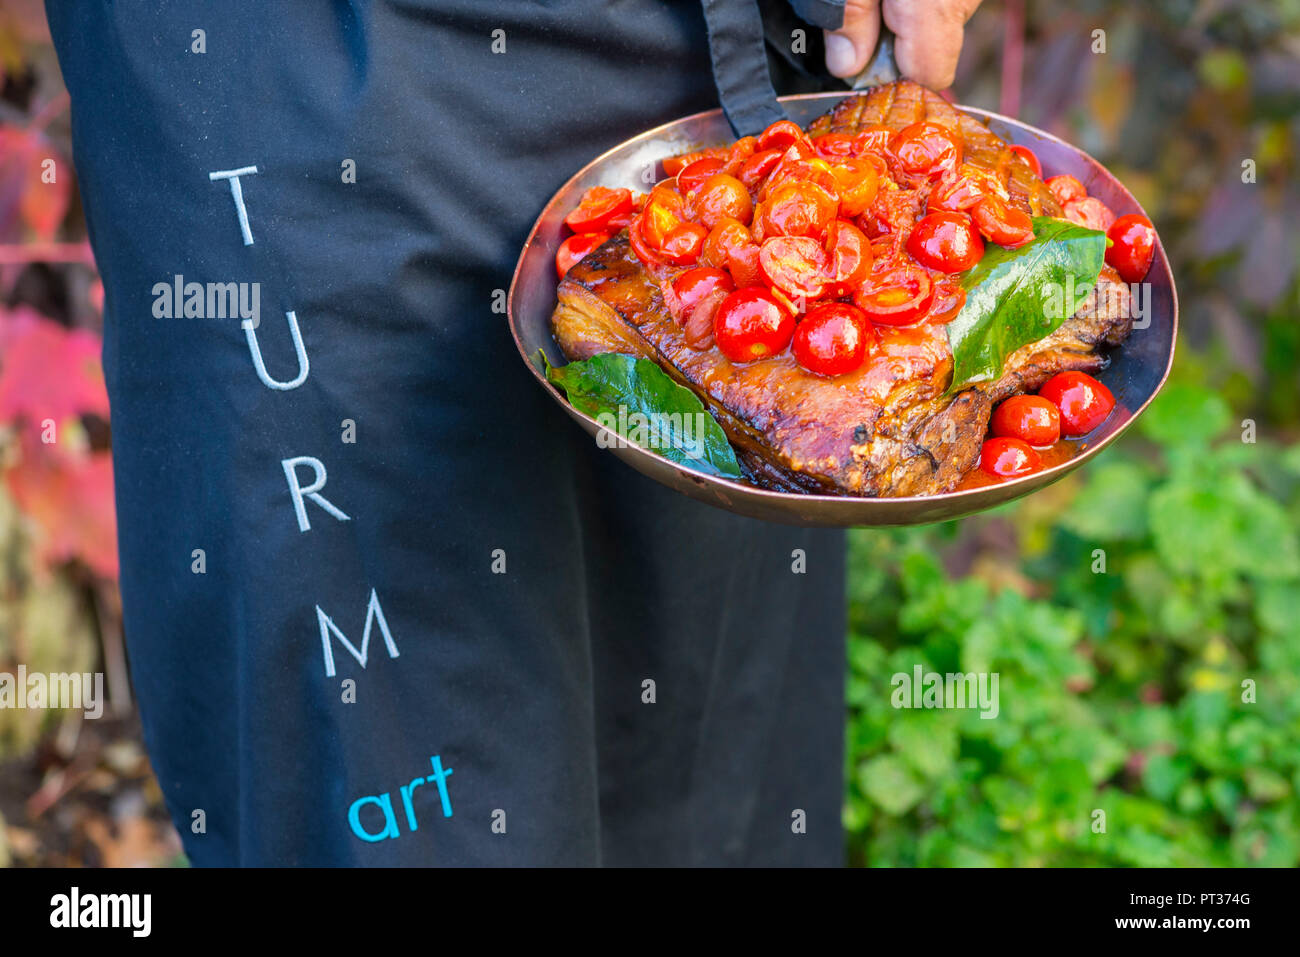 Chef with braised pork belly with tomatoes, Romantik Hotel Turm, Fiè allo Sciliar, Alpe di Siusi, Eisacktal, South Tyrol, Italy - Stock Image